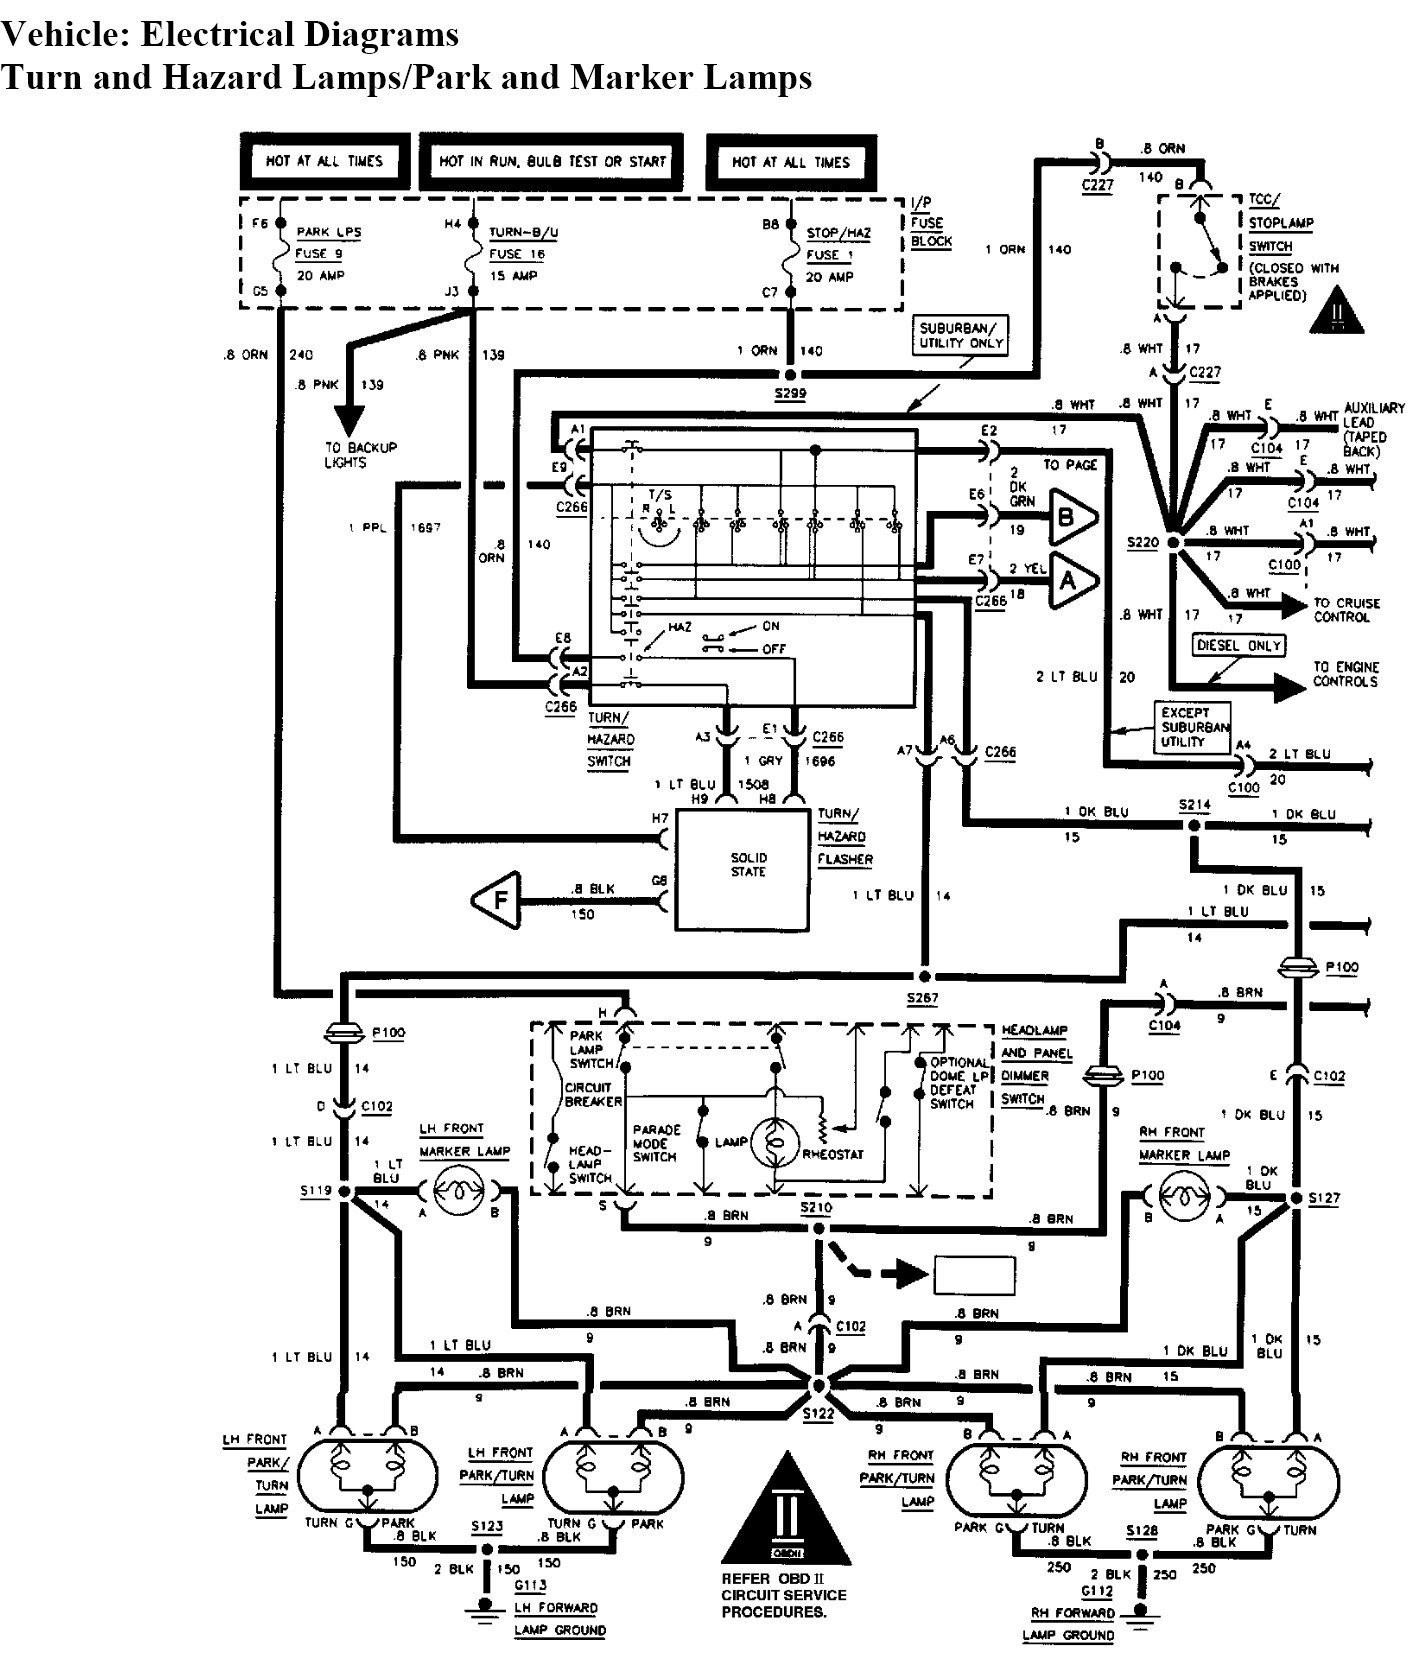 [DIAGRAM_3NM]  FA79 Light Switch Wiring Diagram 2006 Chevy Silverado | Wiring Library | Switched Light Wiring Diagram |  | Wiring Library